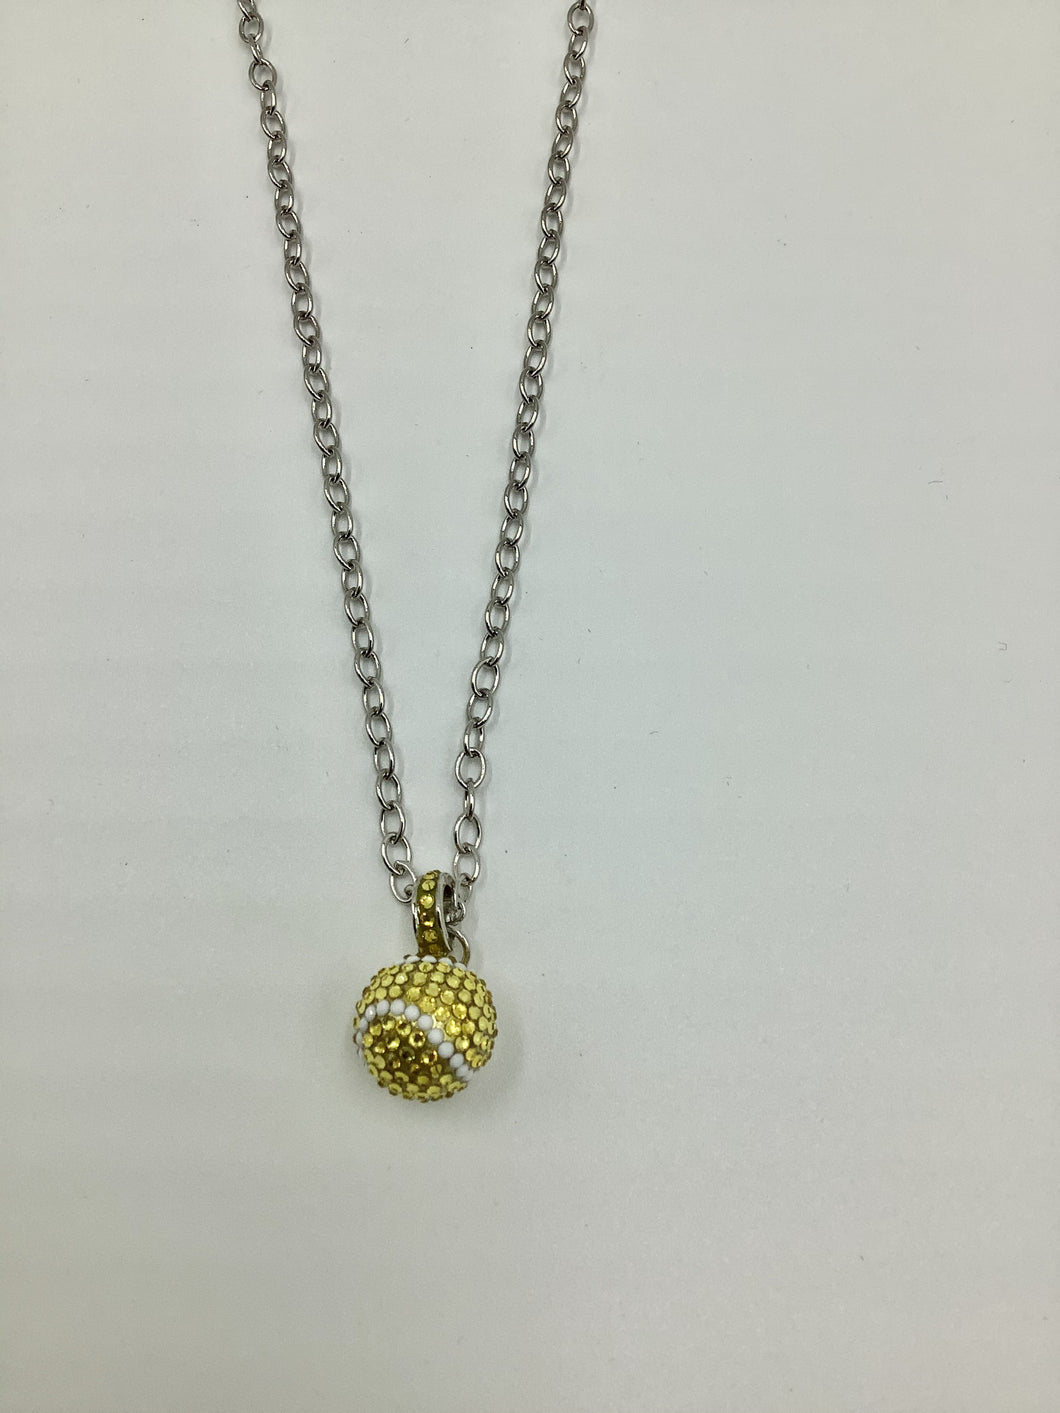 Emily Austin Swarovski Crystal 13mm Tennis Ball Necklace on Roller - Silver Chain